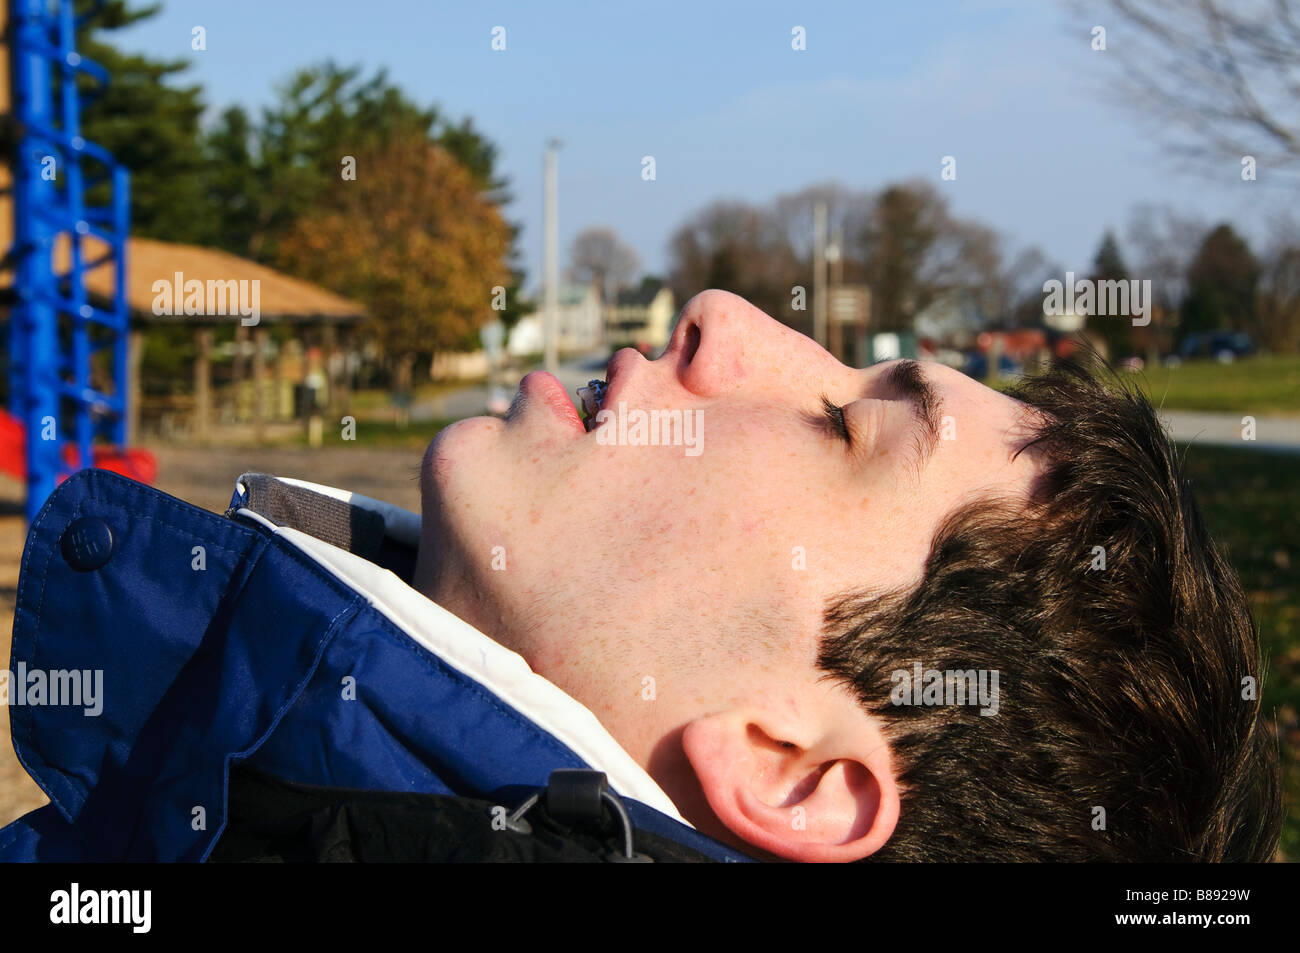 Teen resting outdoors - Stock Image